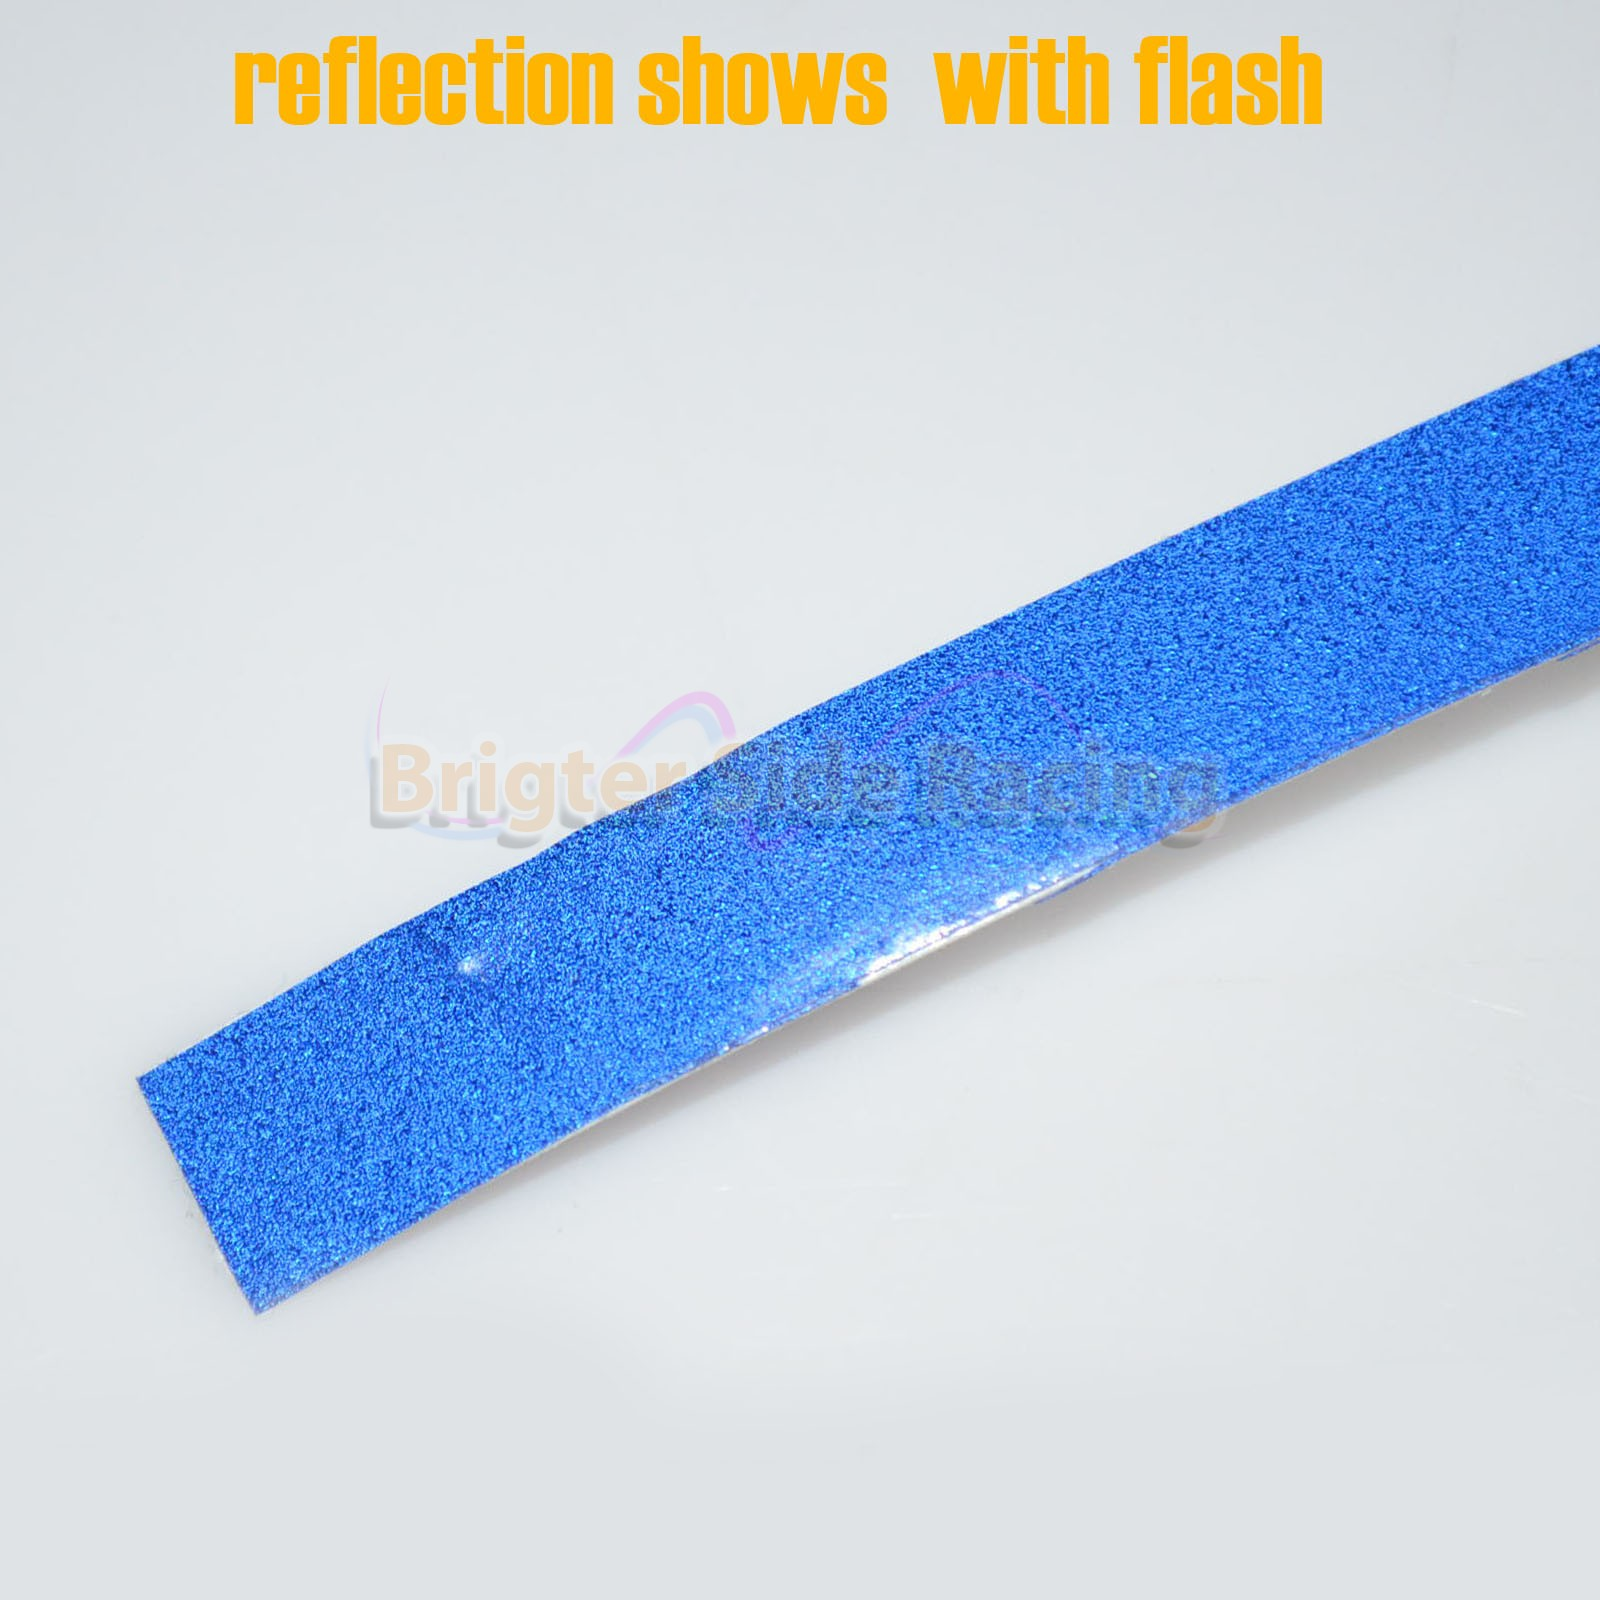 FOR VW CARS EURO BLUE SELF-ADHESIVE REFLECTIVE TAPE 1.5CMX45M LONG STRIP ROLL